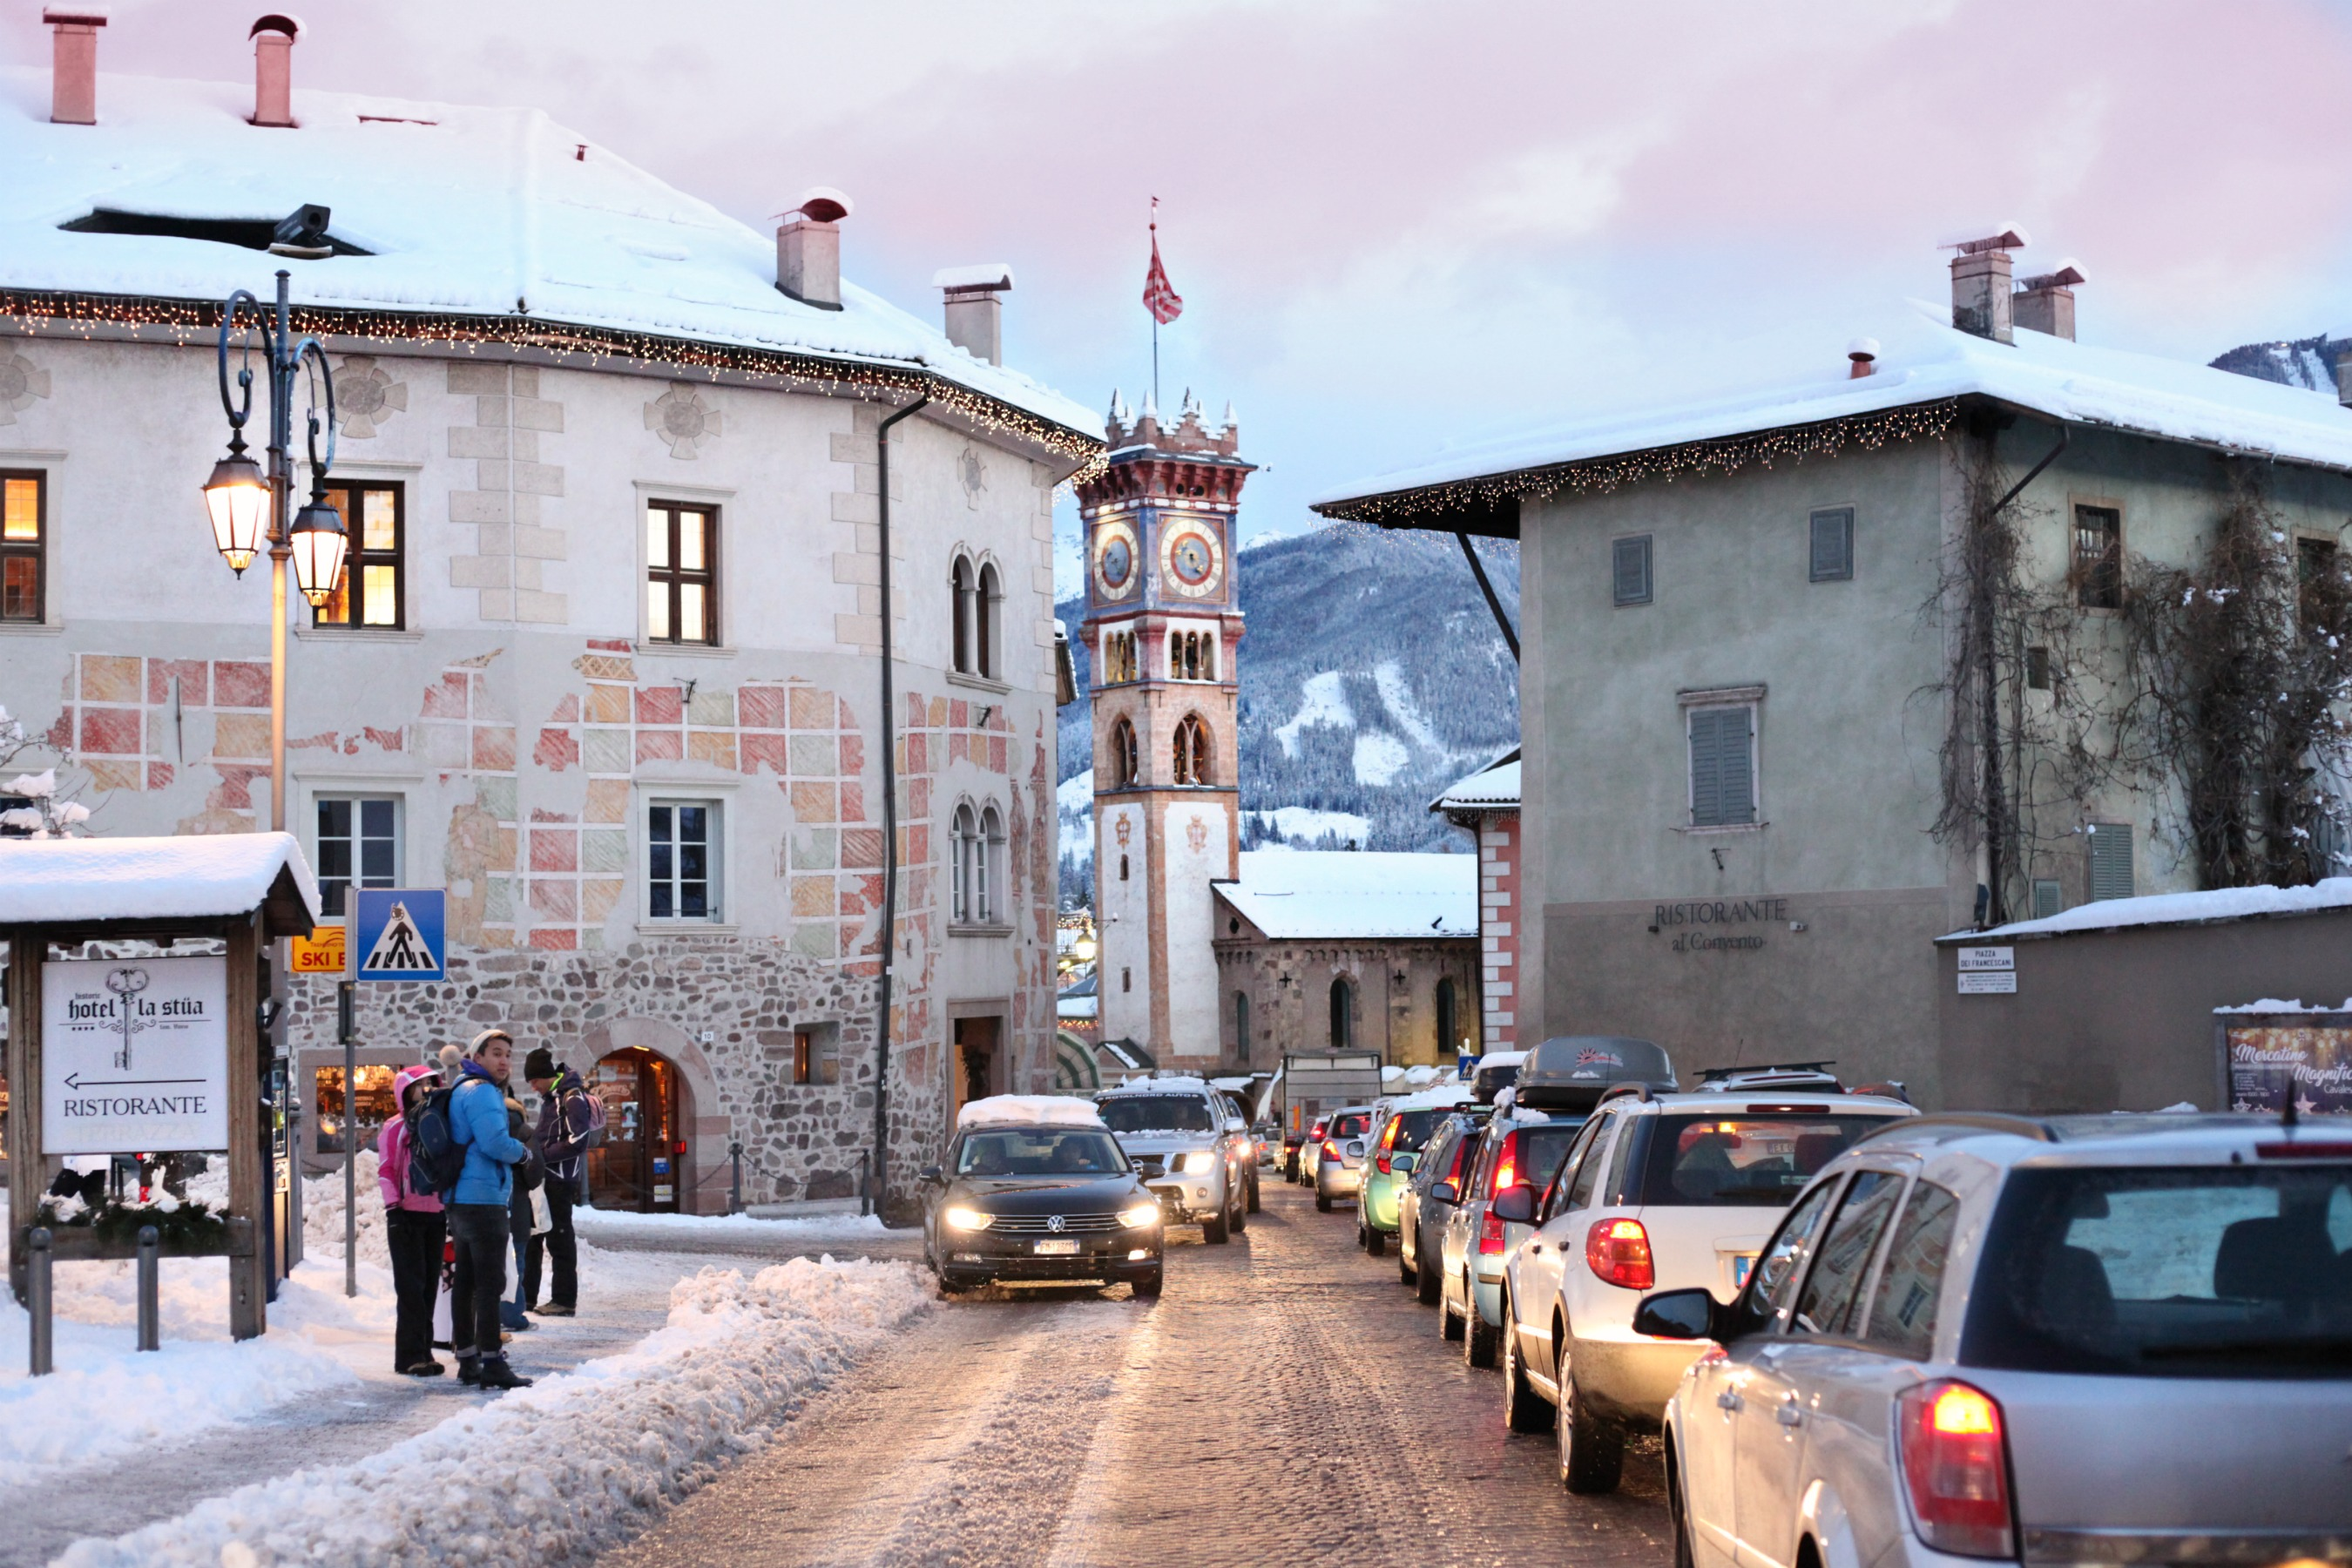 The beautifully town of Cavalese, Val di Fiemme, Italy